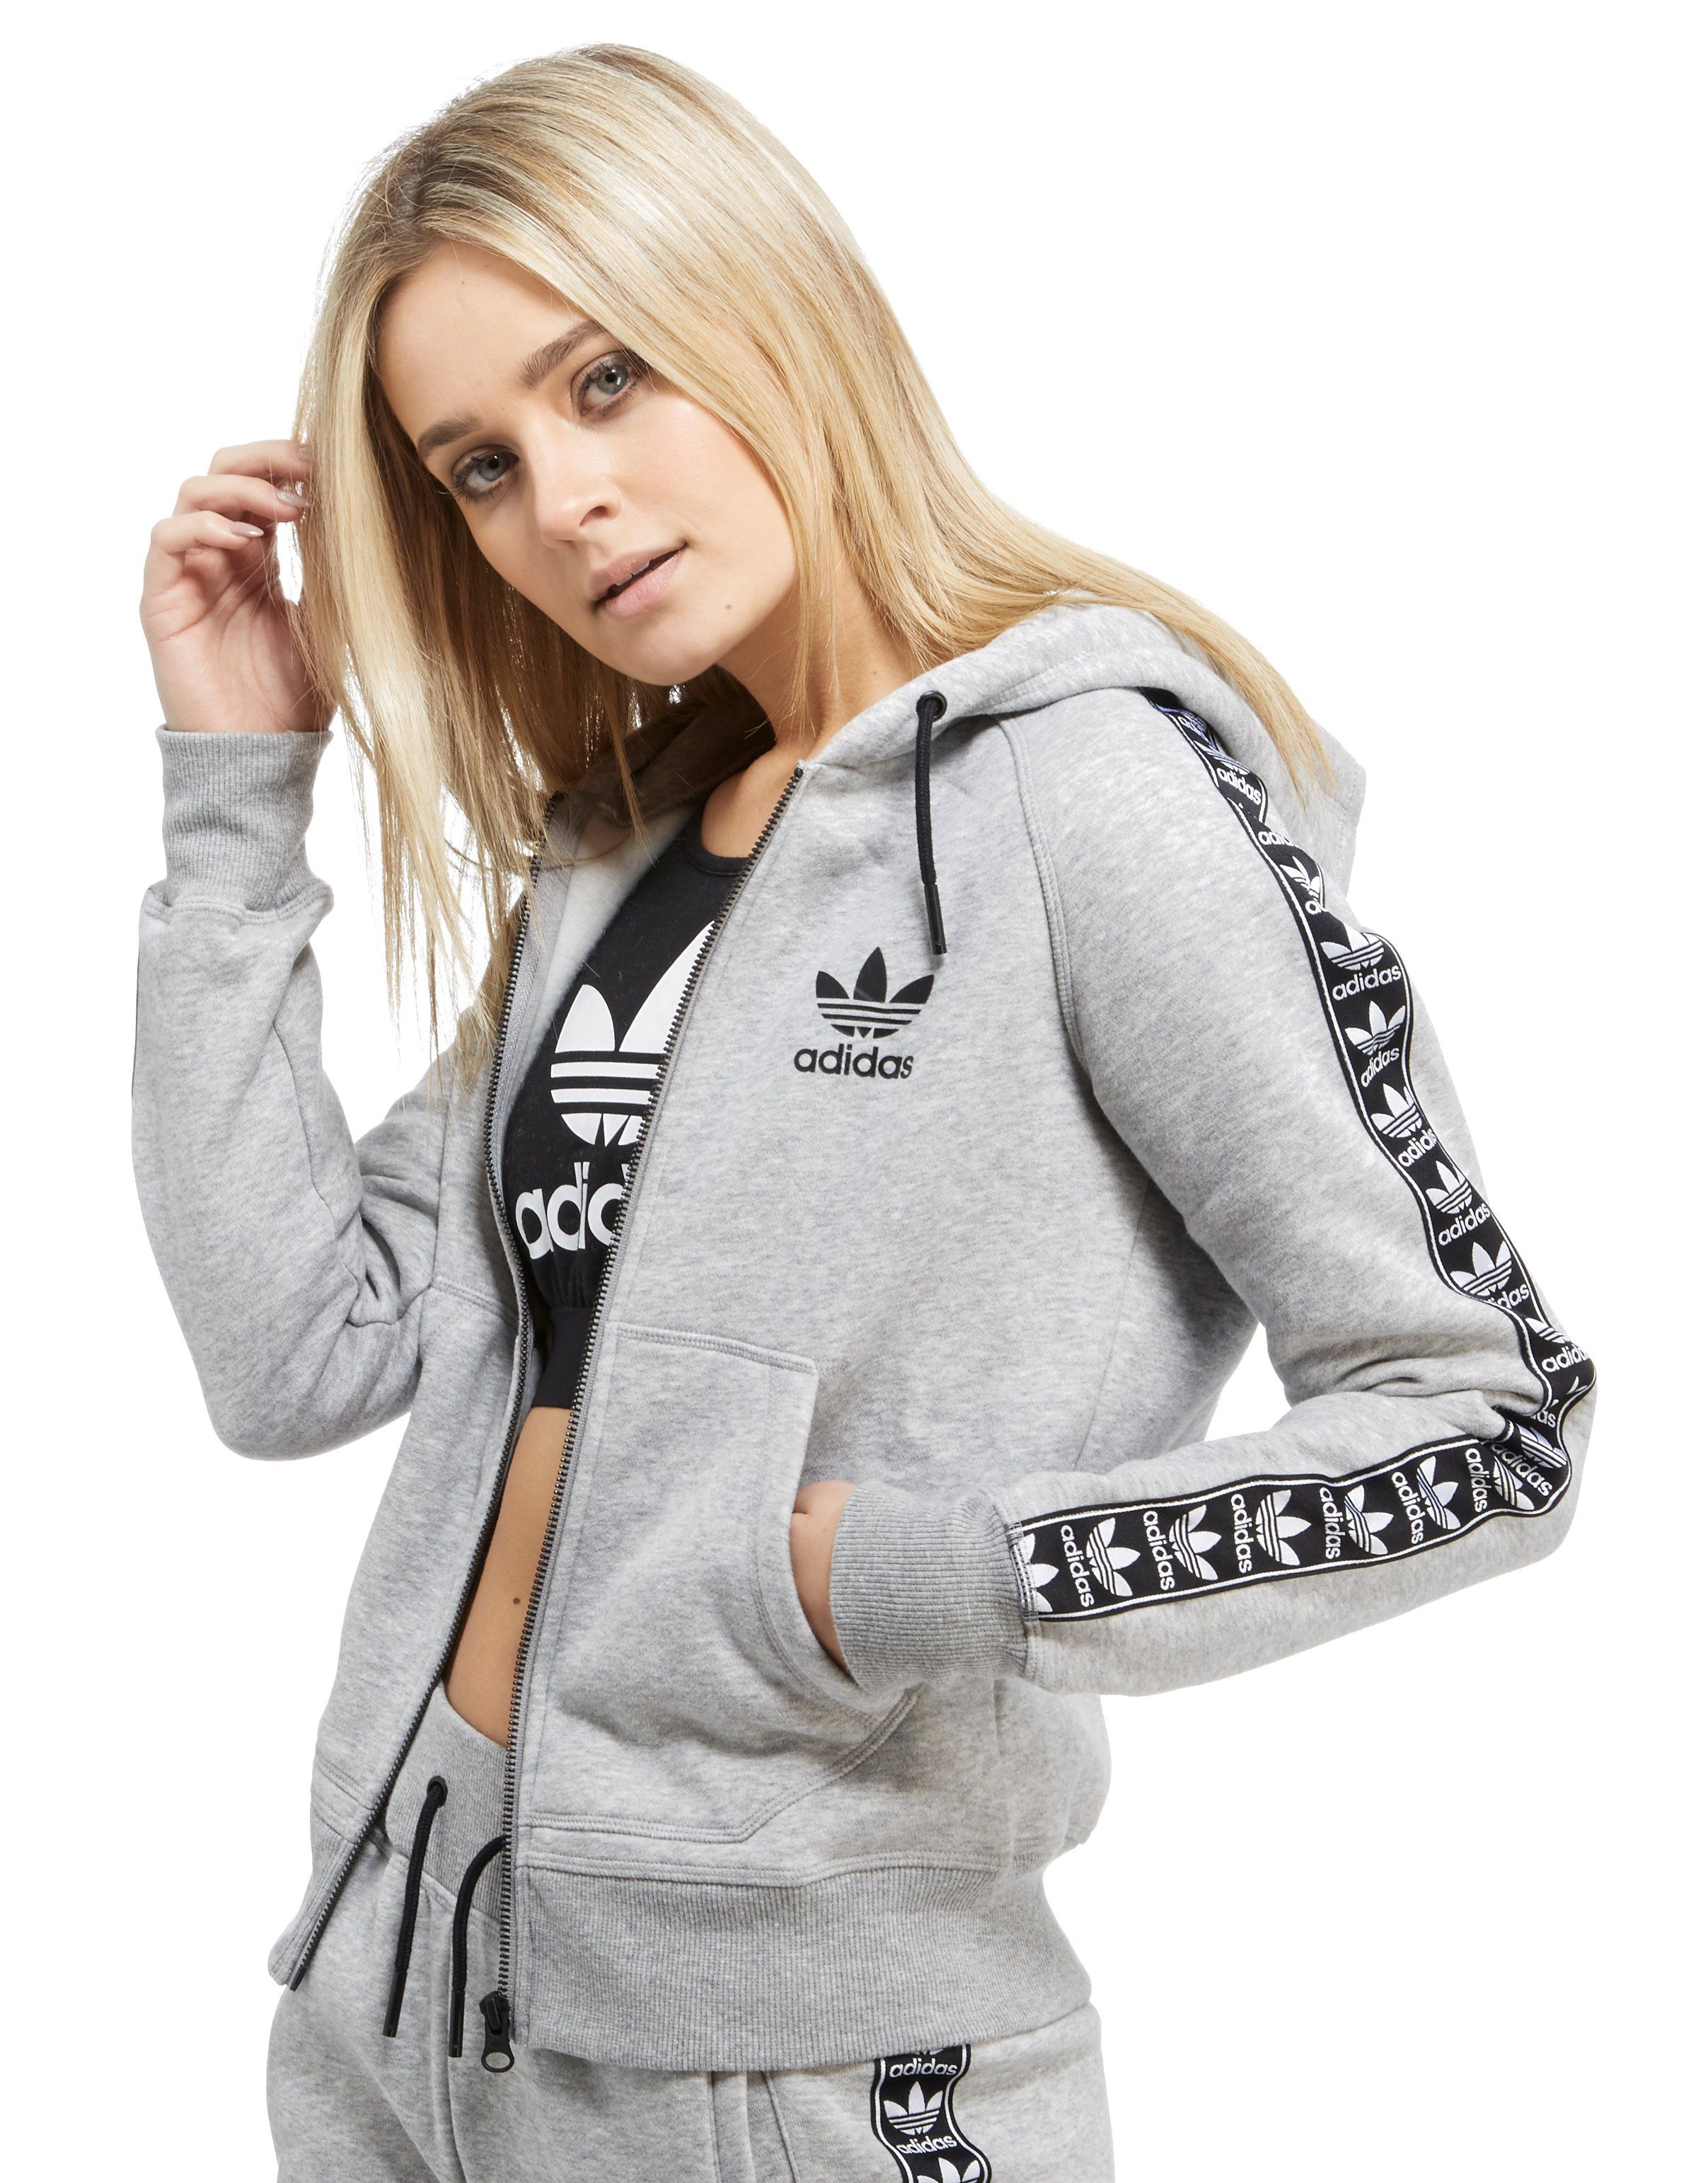 adidas originals tape zipped hoody jd sports. Black Bedroom Furniture Sets. Home Design Ideas